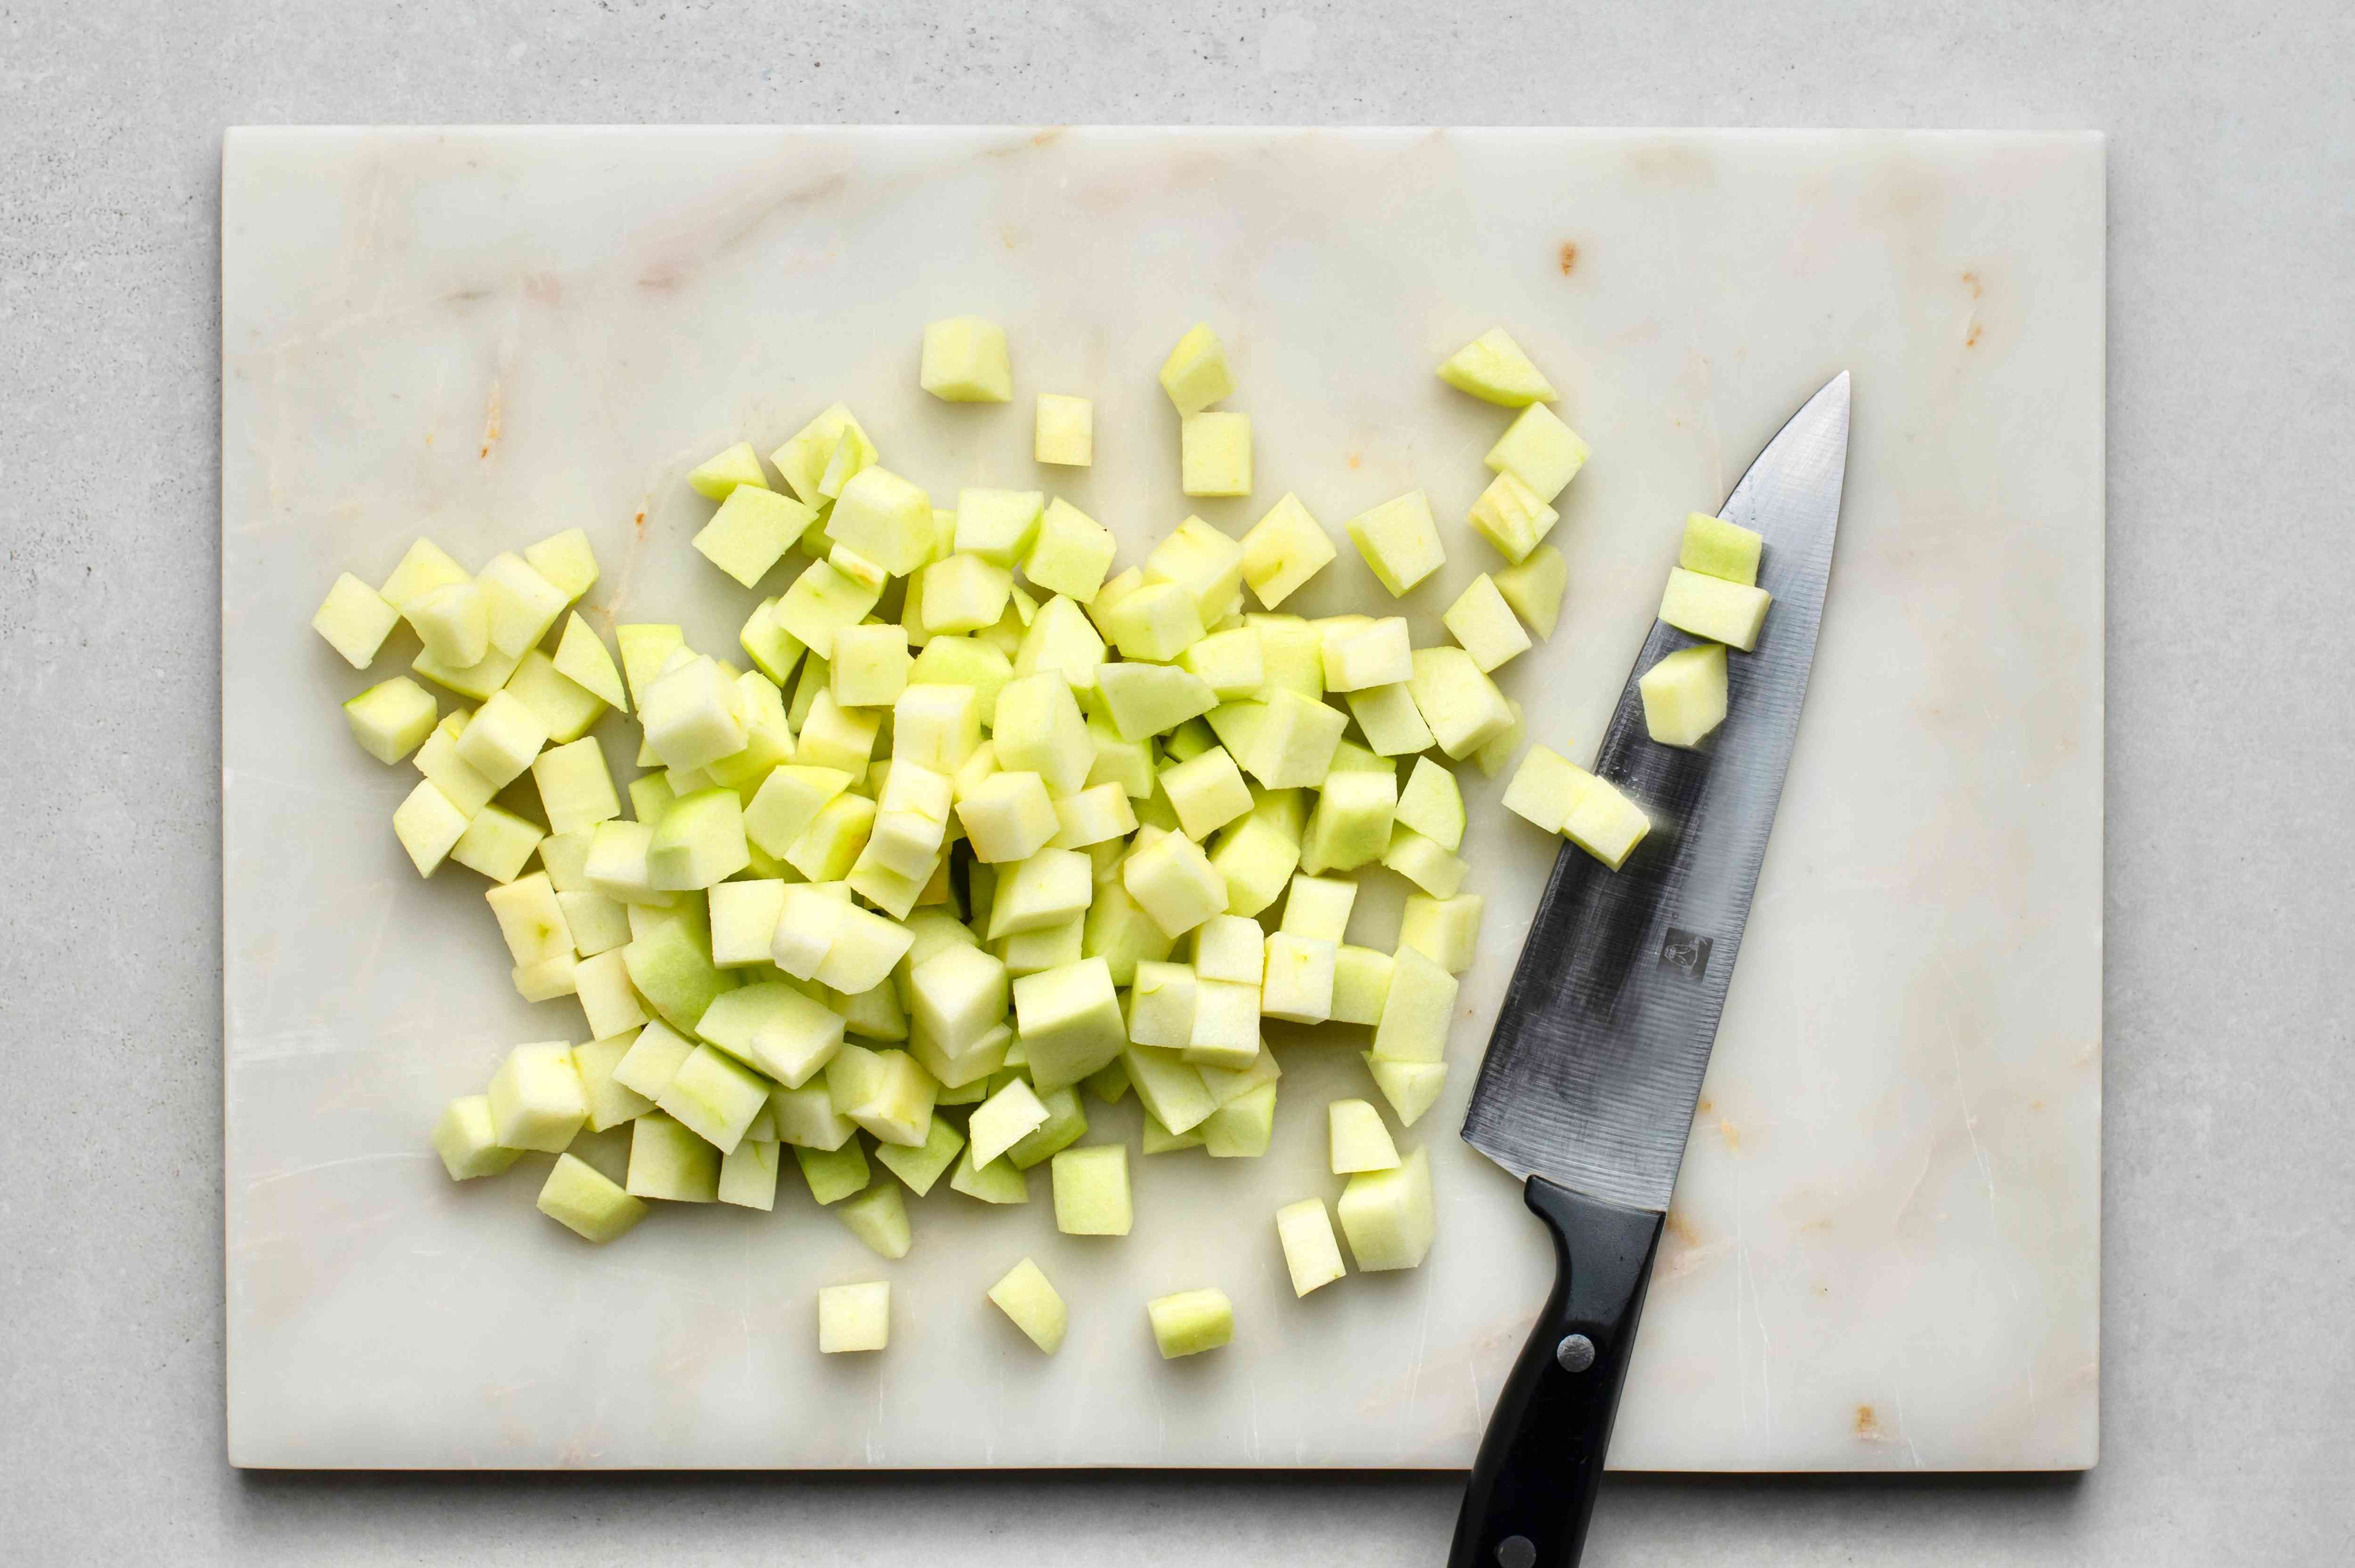 Peeled and chopped apples on a cutting board with a knife